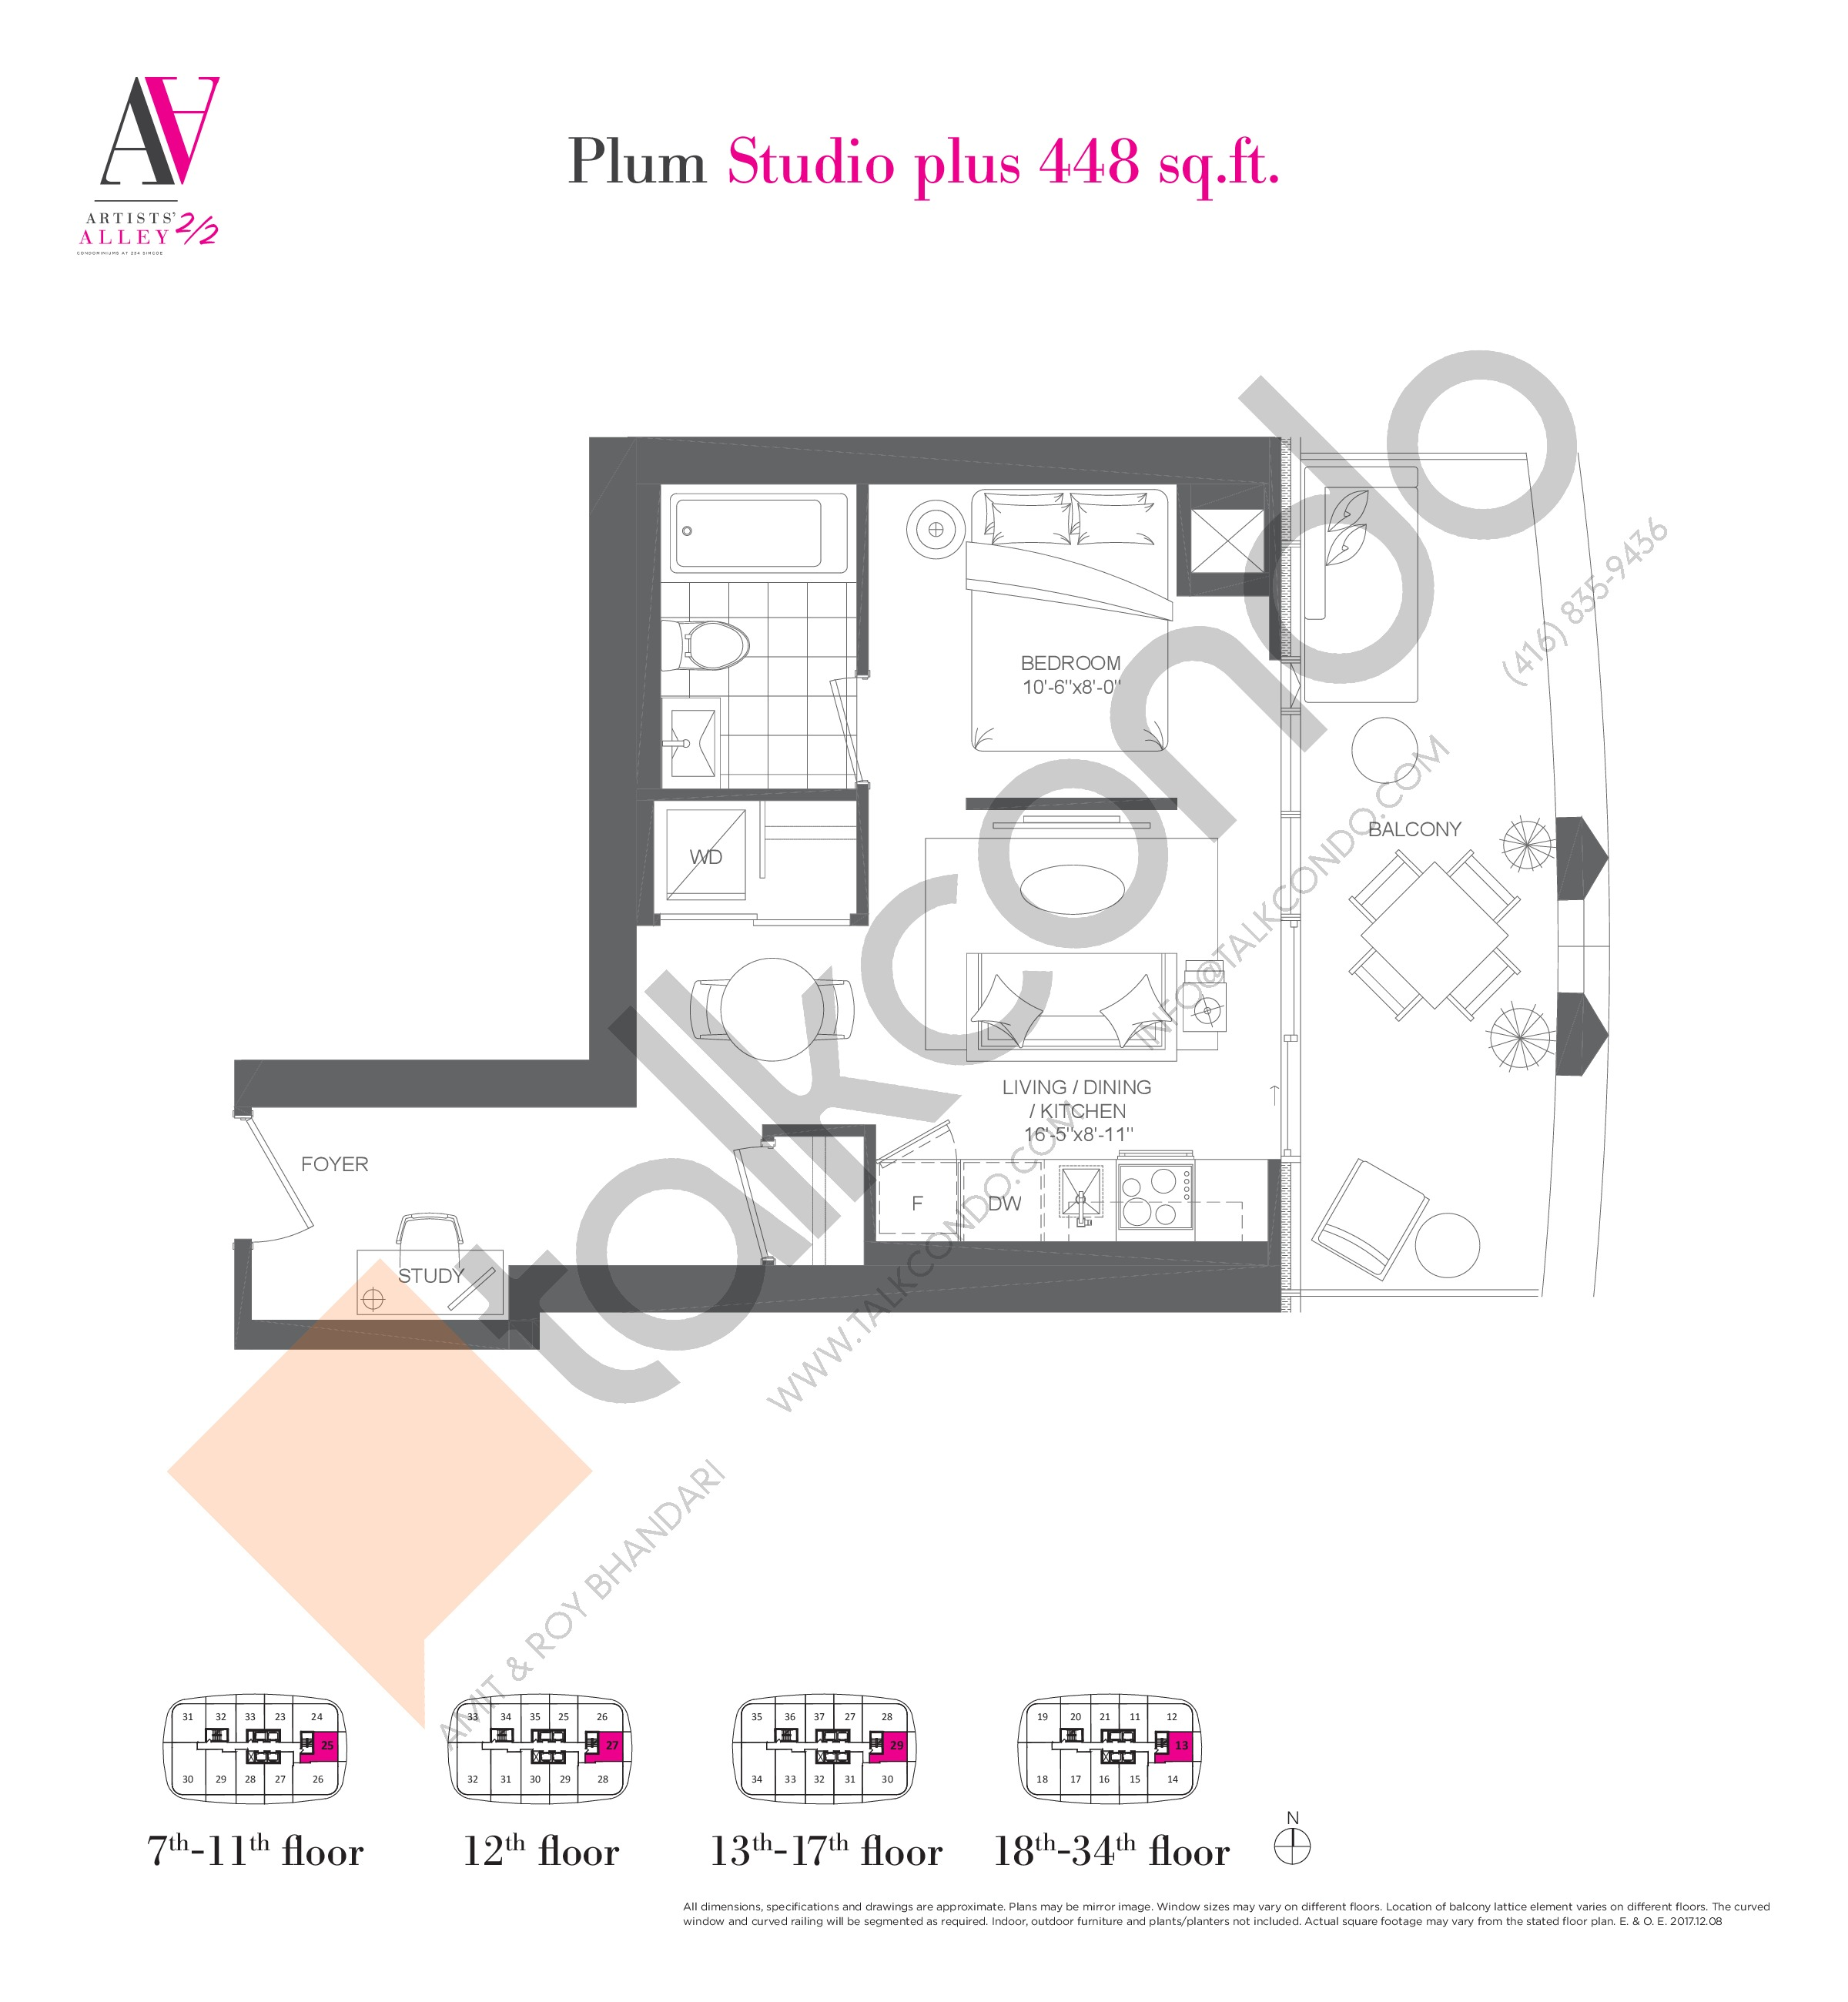 Plum Floor Plan at Artists' Alley 2 Condos - 448 sq.ft